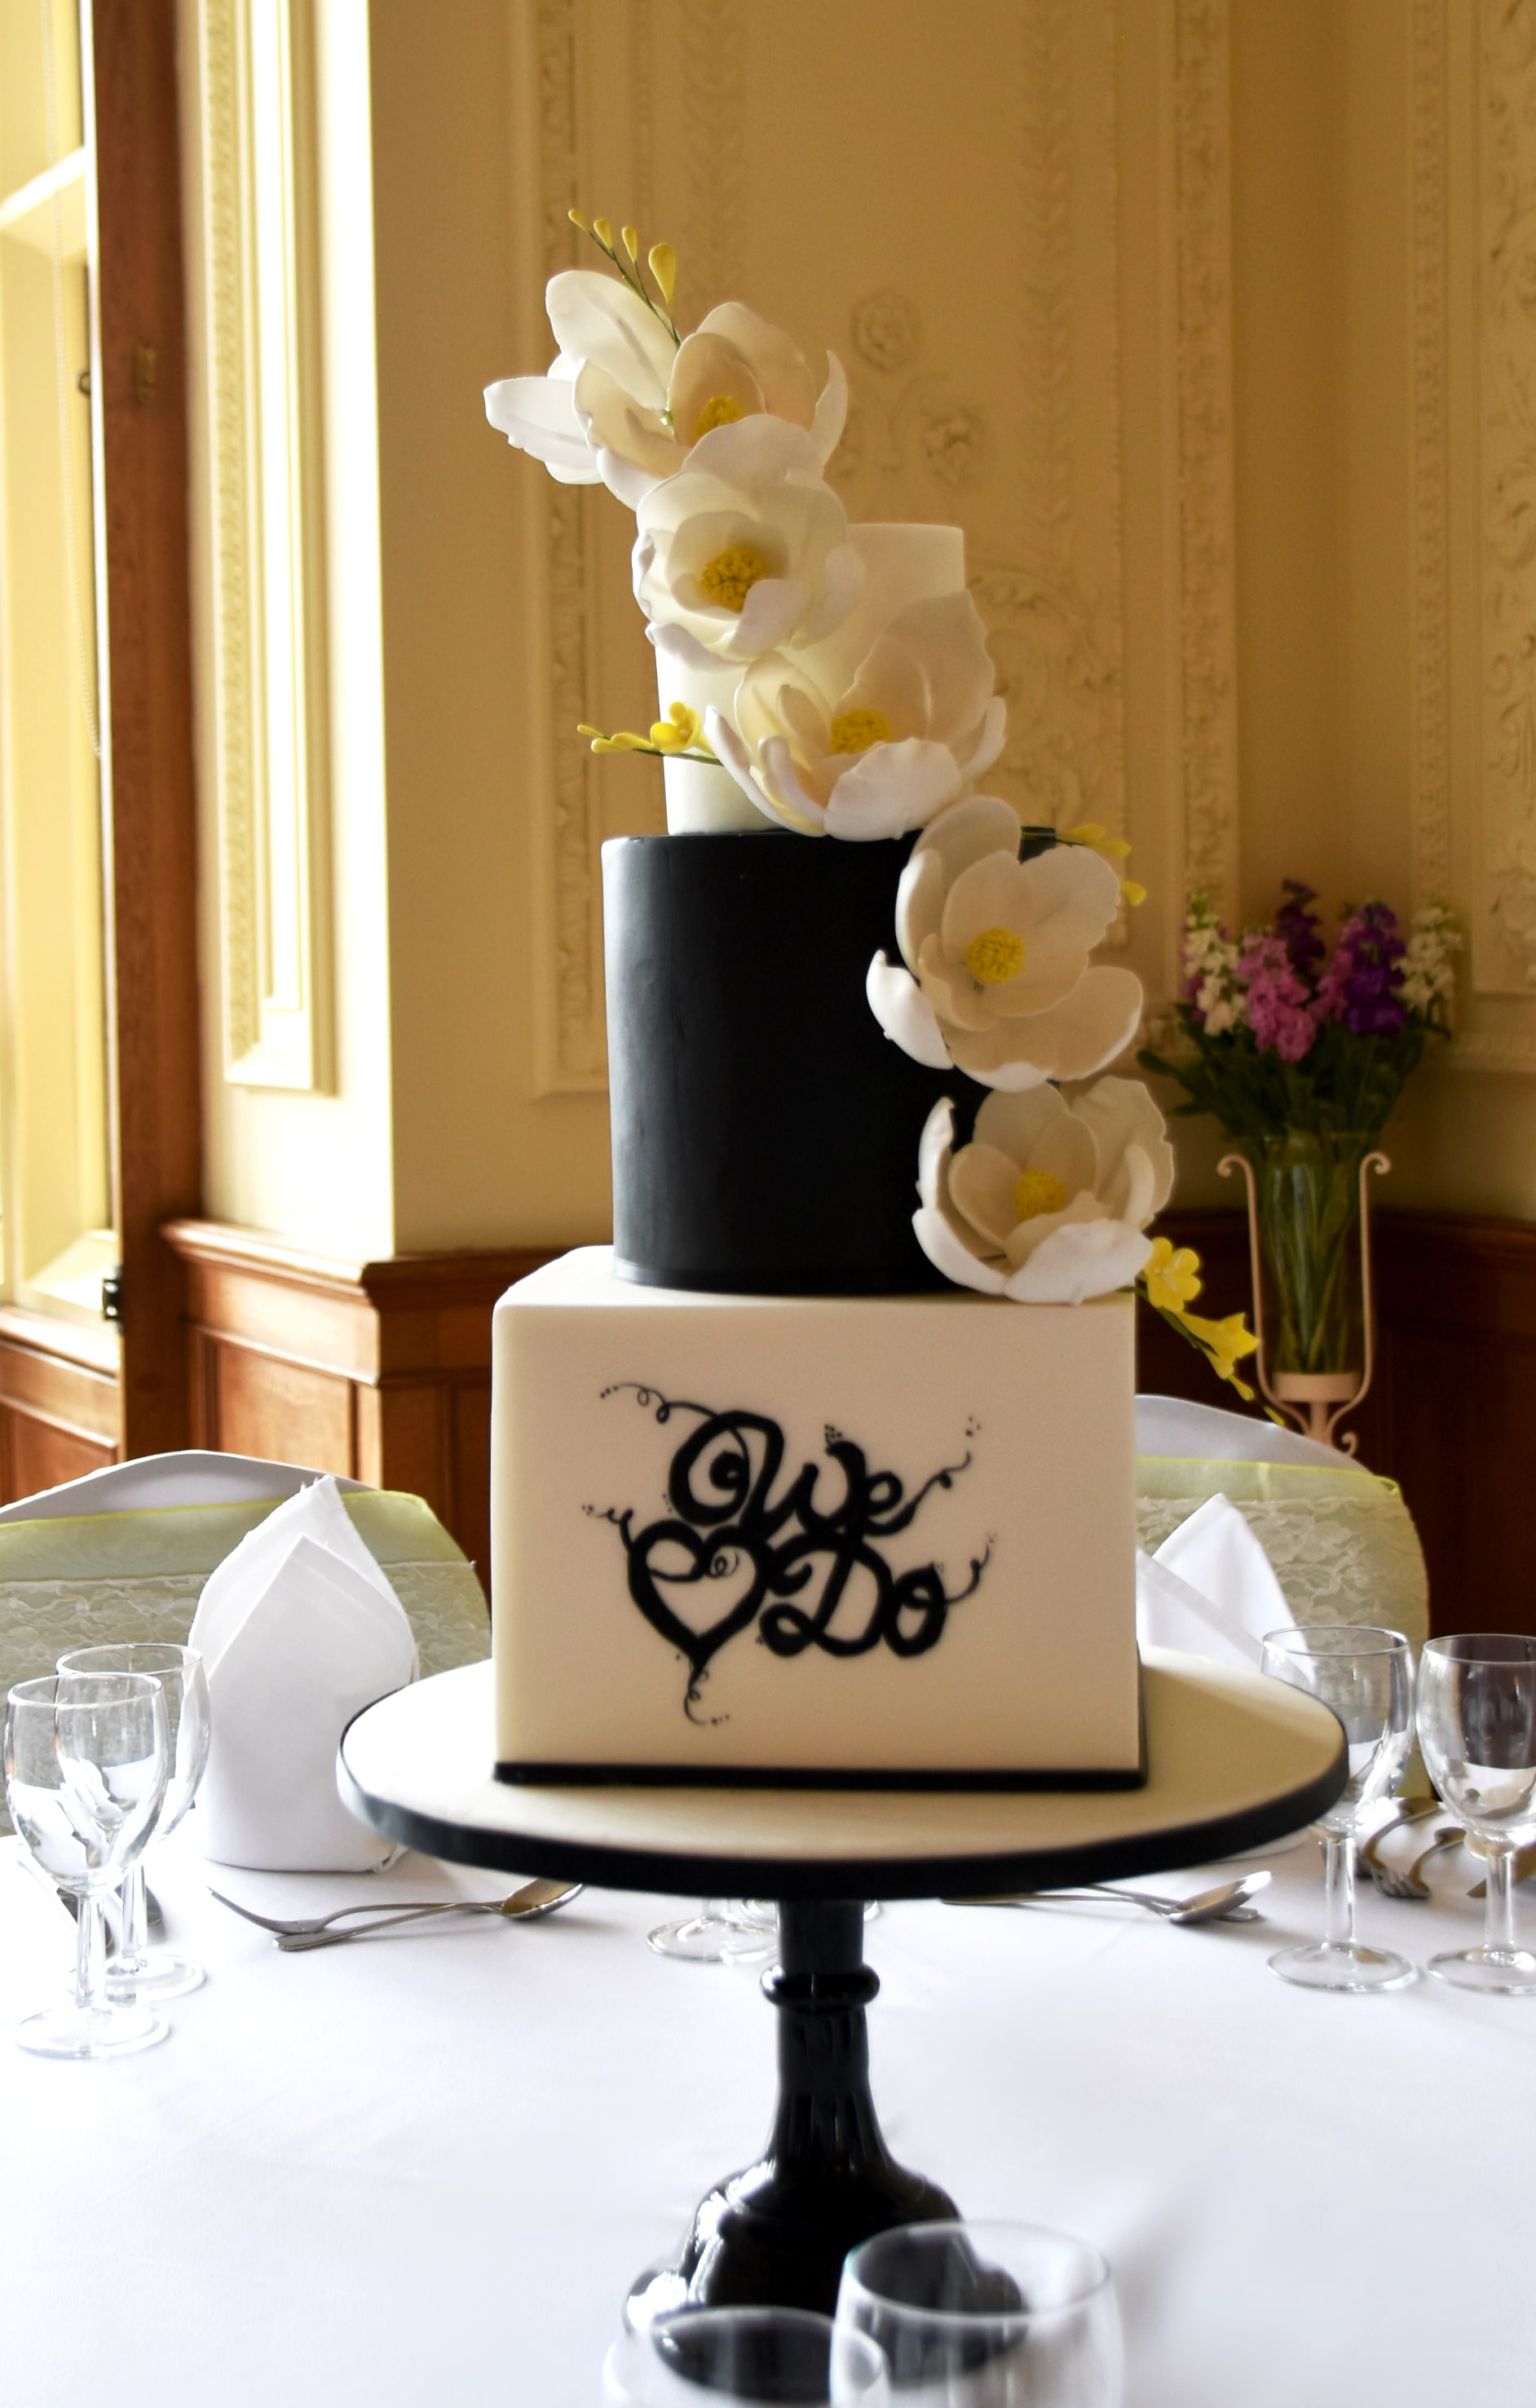 The House Shuttleworth Wedding Cake by Meadowsweet Cakes. Stunning black and white cake with custom calligraphy and sugar flowers